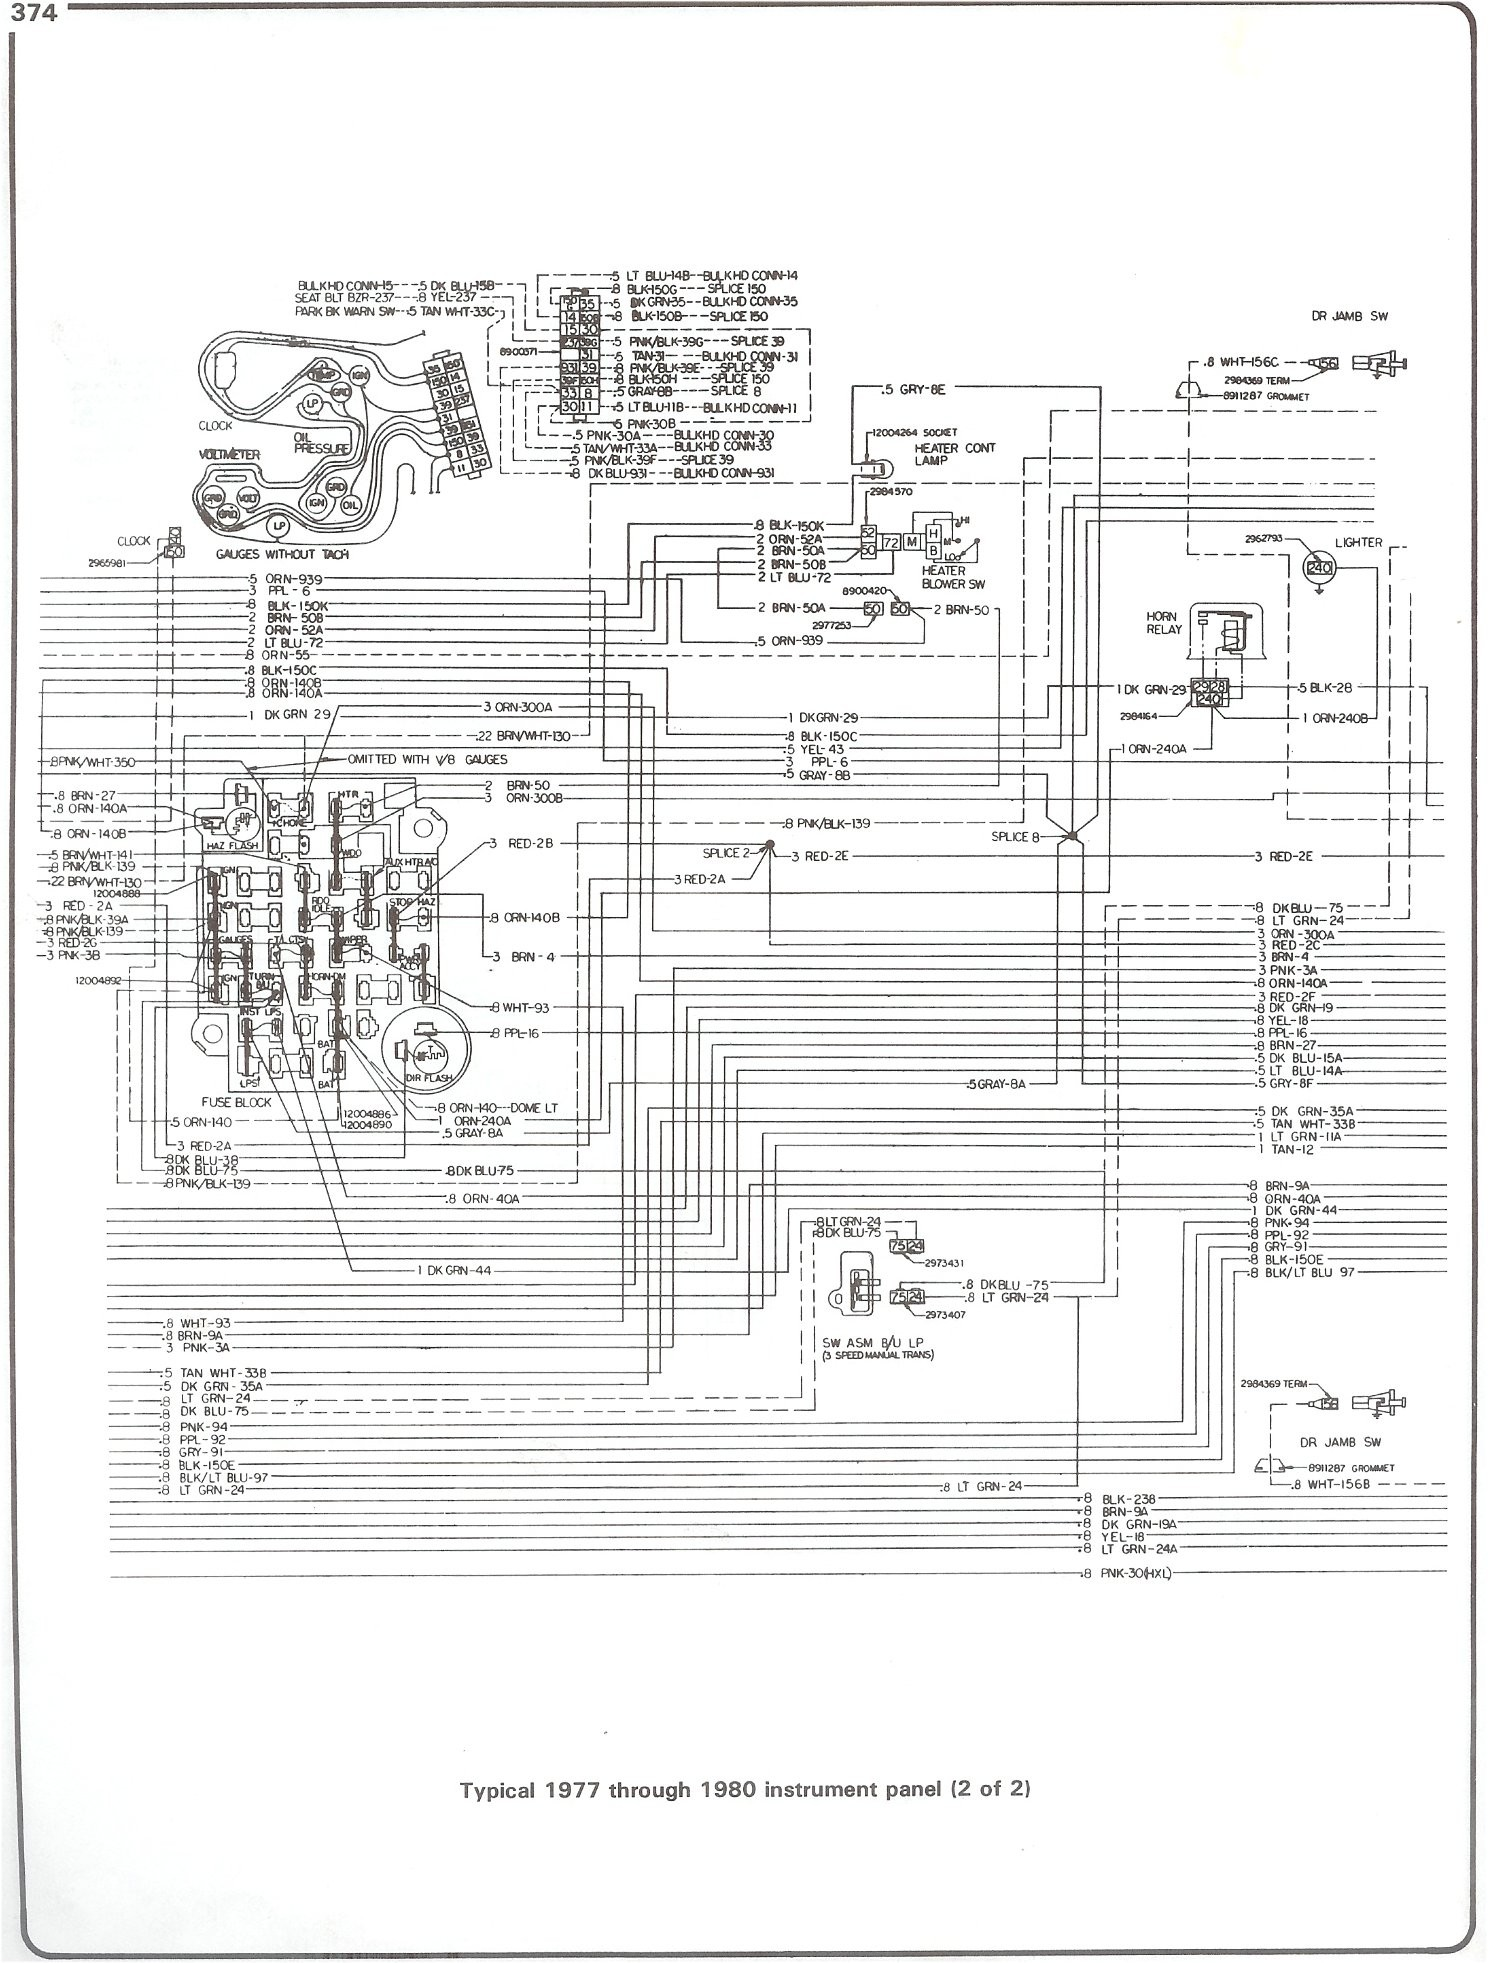 wiring diagram 1973 chevy truck under hood wiring diagram 1967 ford rh efluencia co 72 Chevy Starter Wiring Diagram Chevy Charging System Wiring Diagram